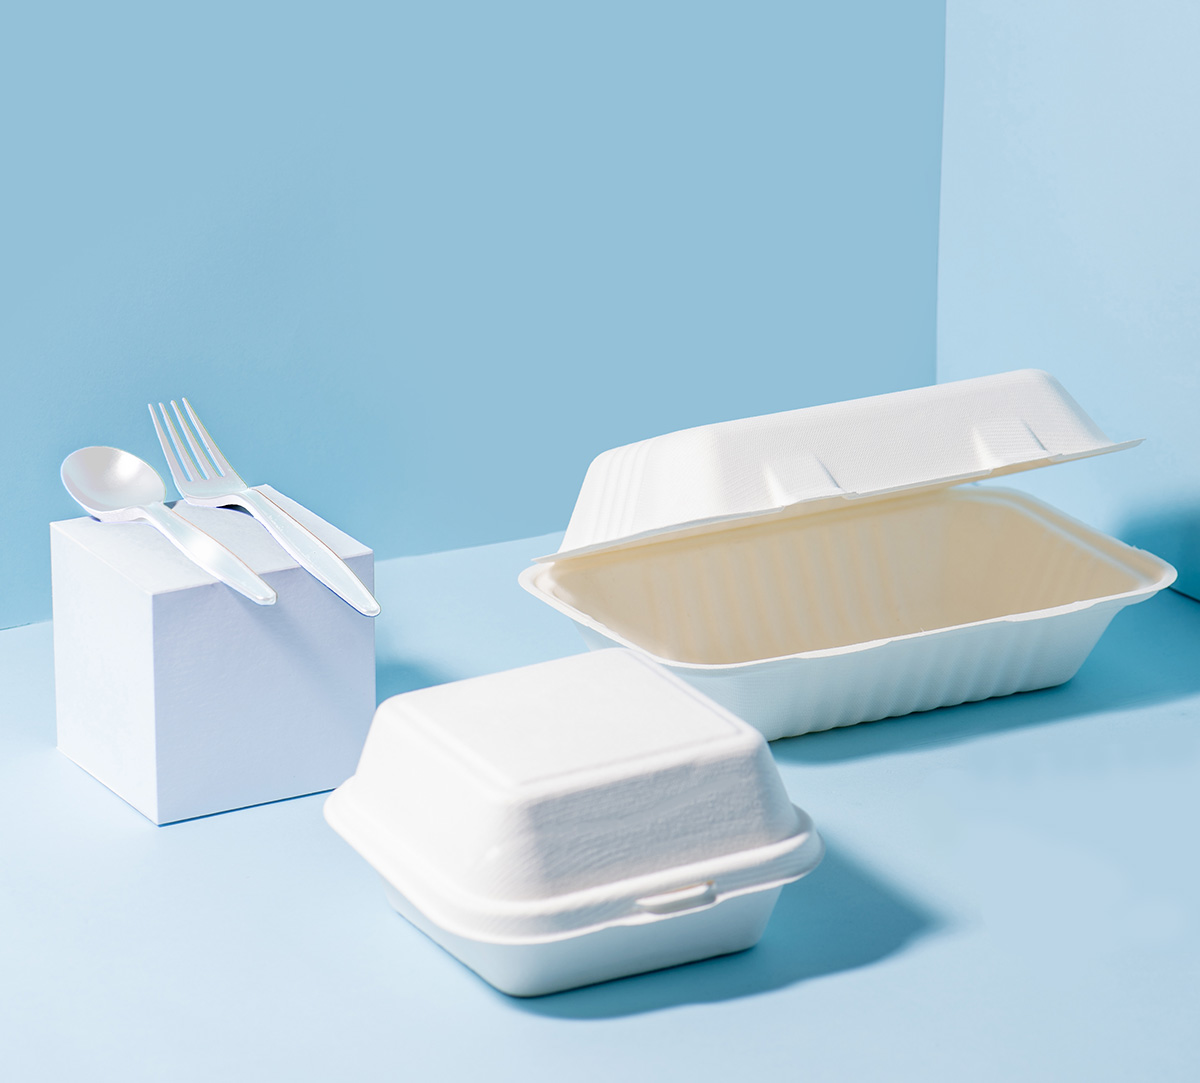 Compostable sugarcane containers and cornstarch cutlery over blue background